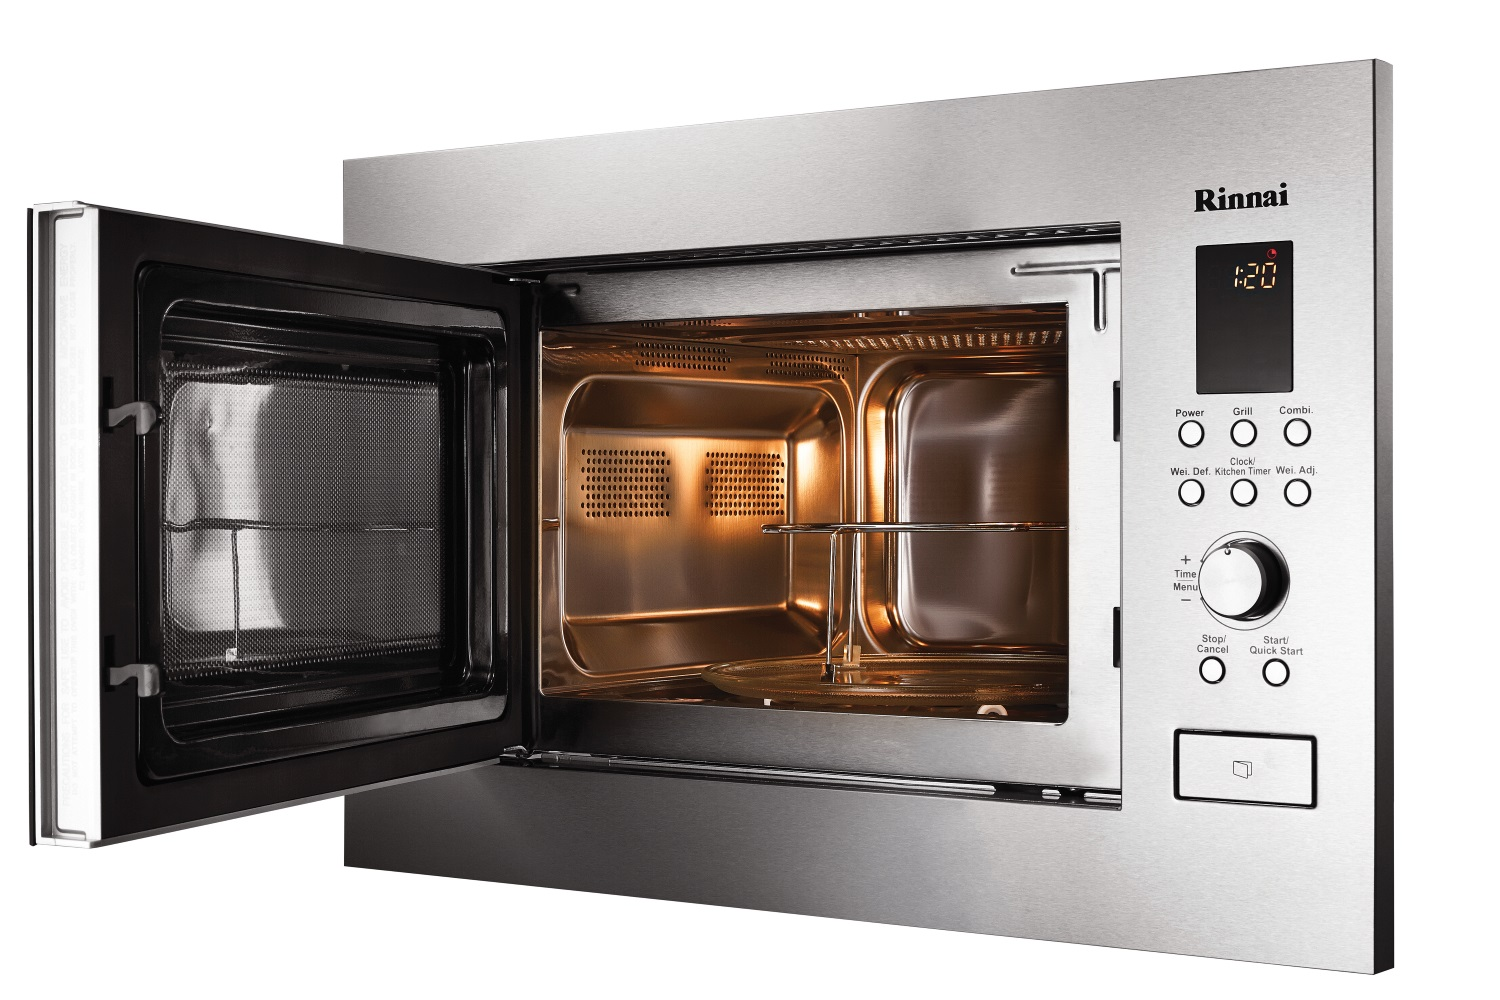 Ro M2561 Sm 25lt Built In Microwave With Grill Rinnai